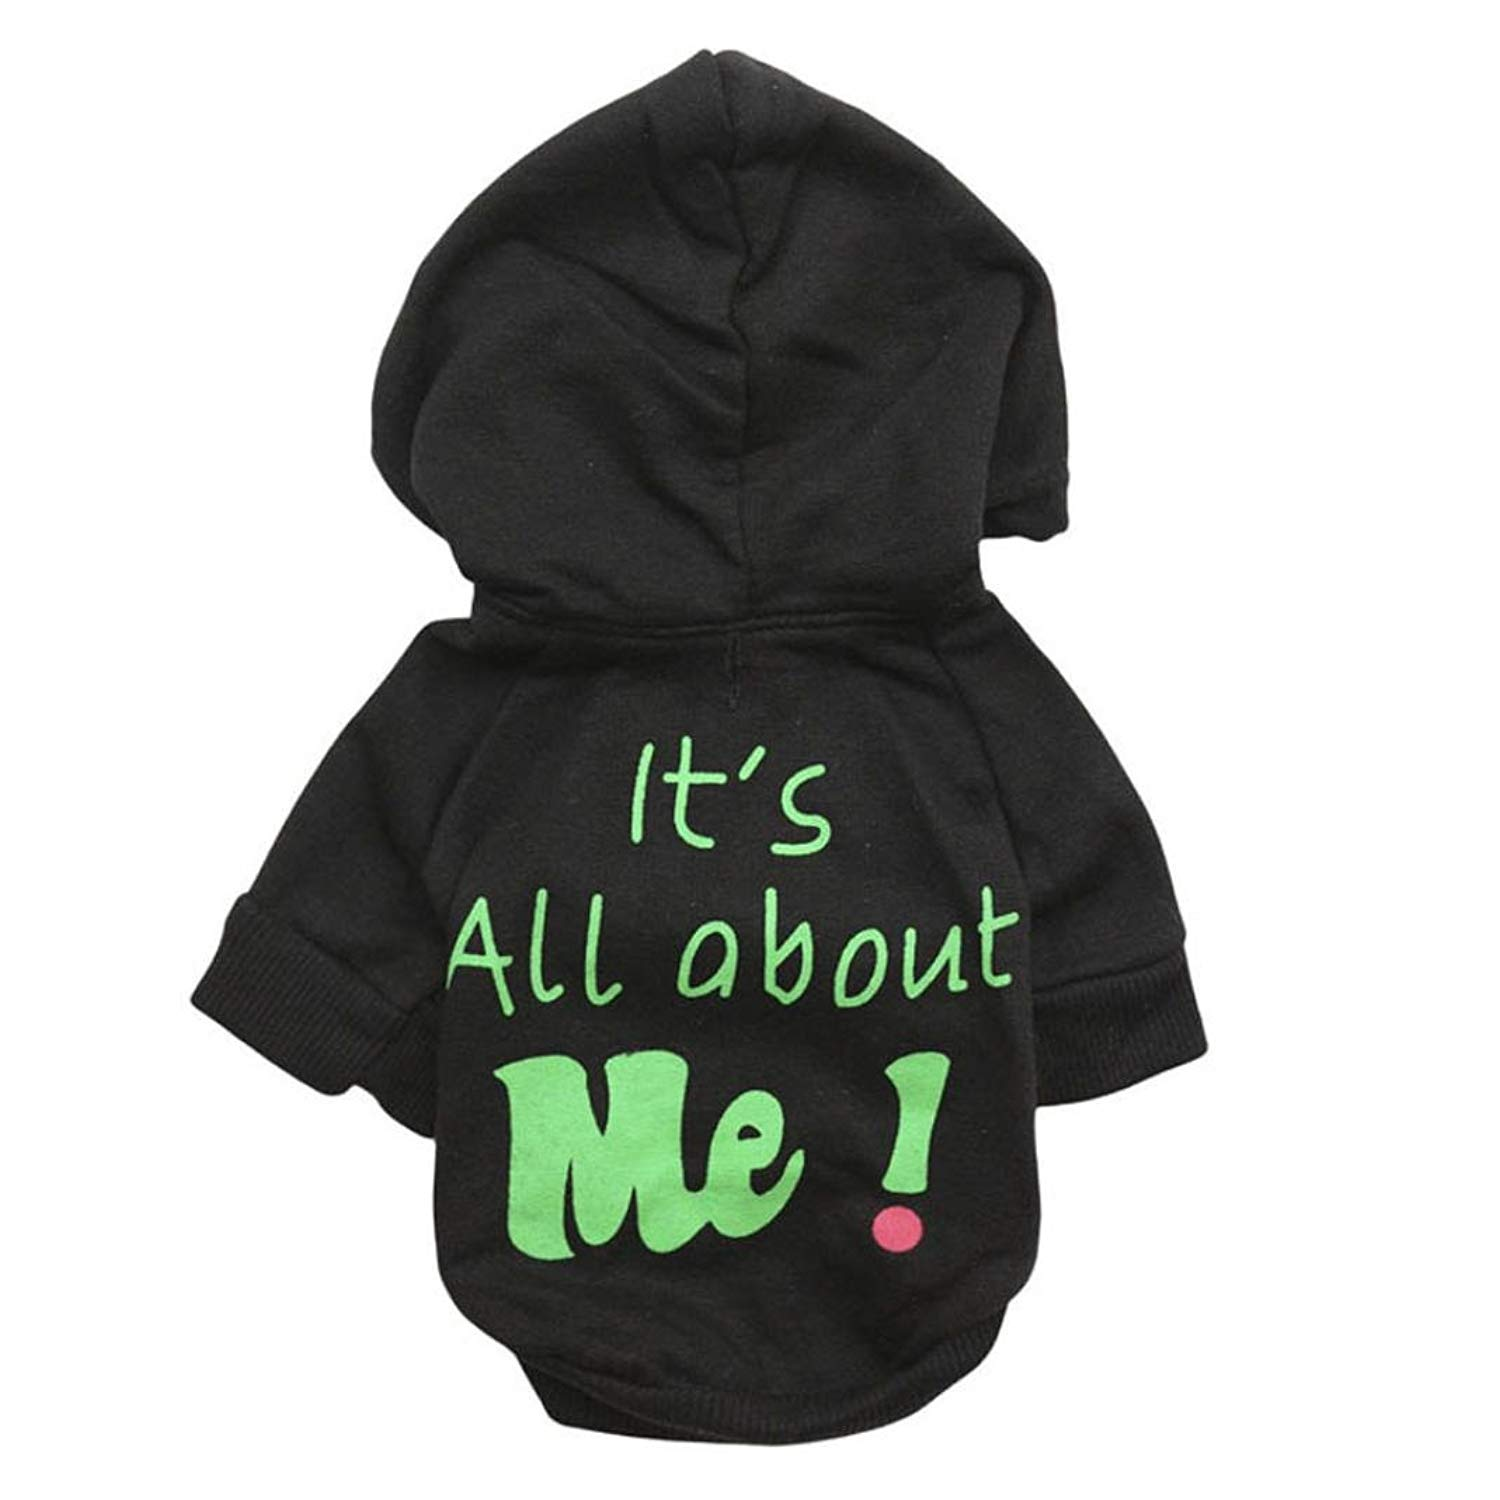 Howstar Pet Clothes, Warm Hoodie Coat Cute Dog Clothing It's All About Me Printed Shirt Doggie Costume